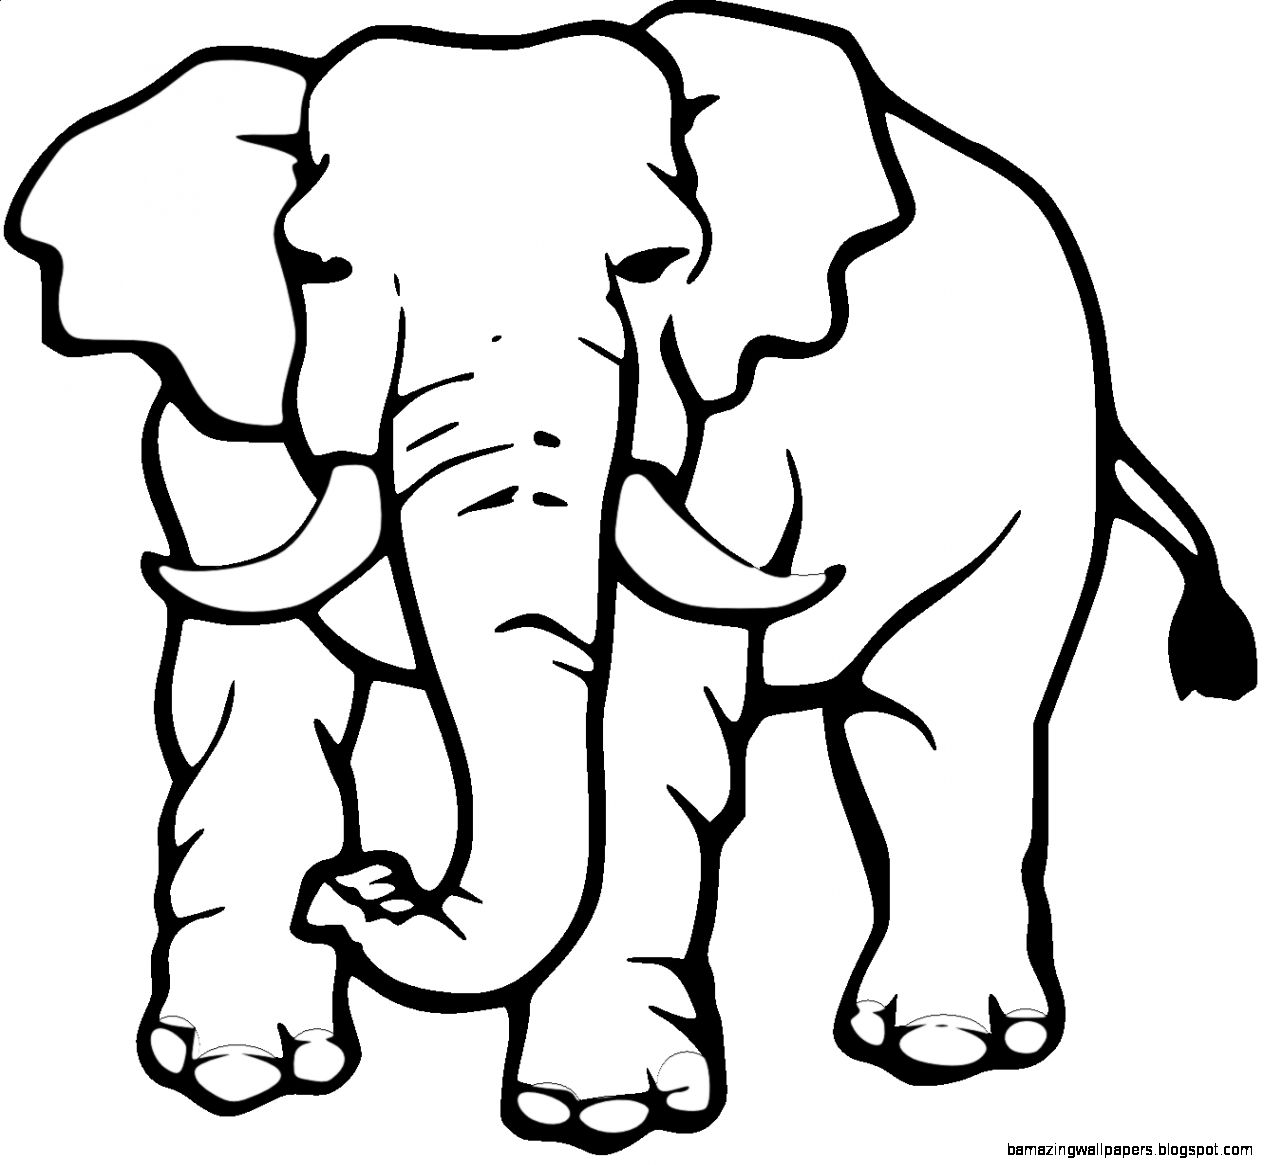 1264x1165 Image Of Elephant Clipart Black And White